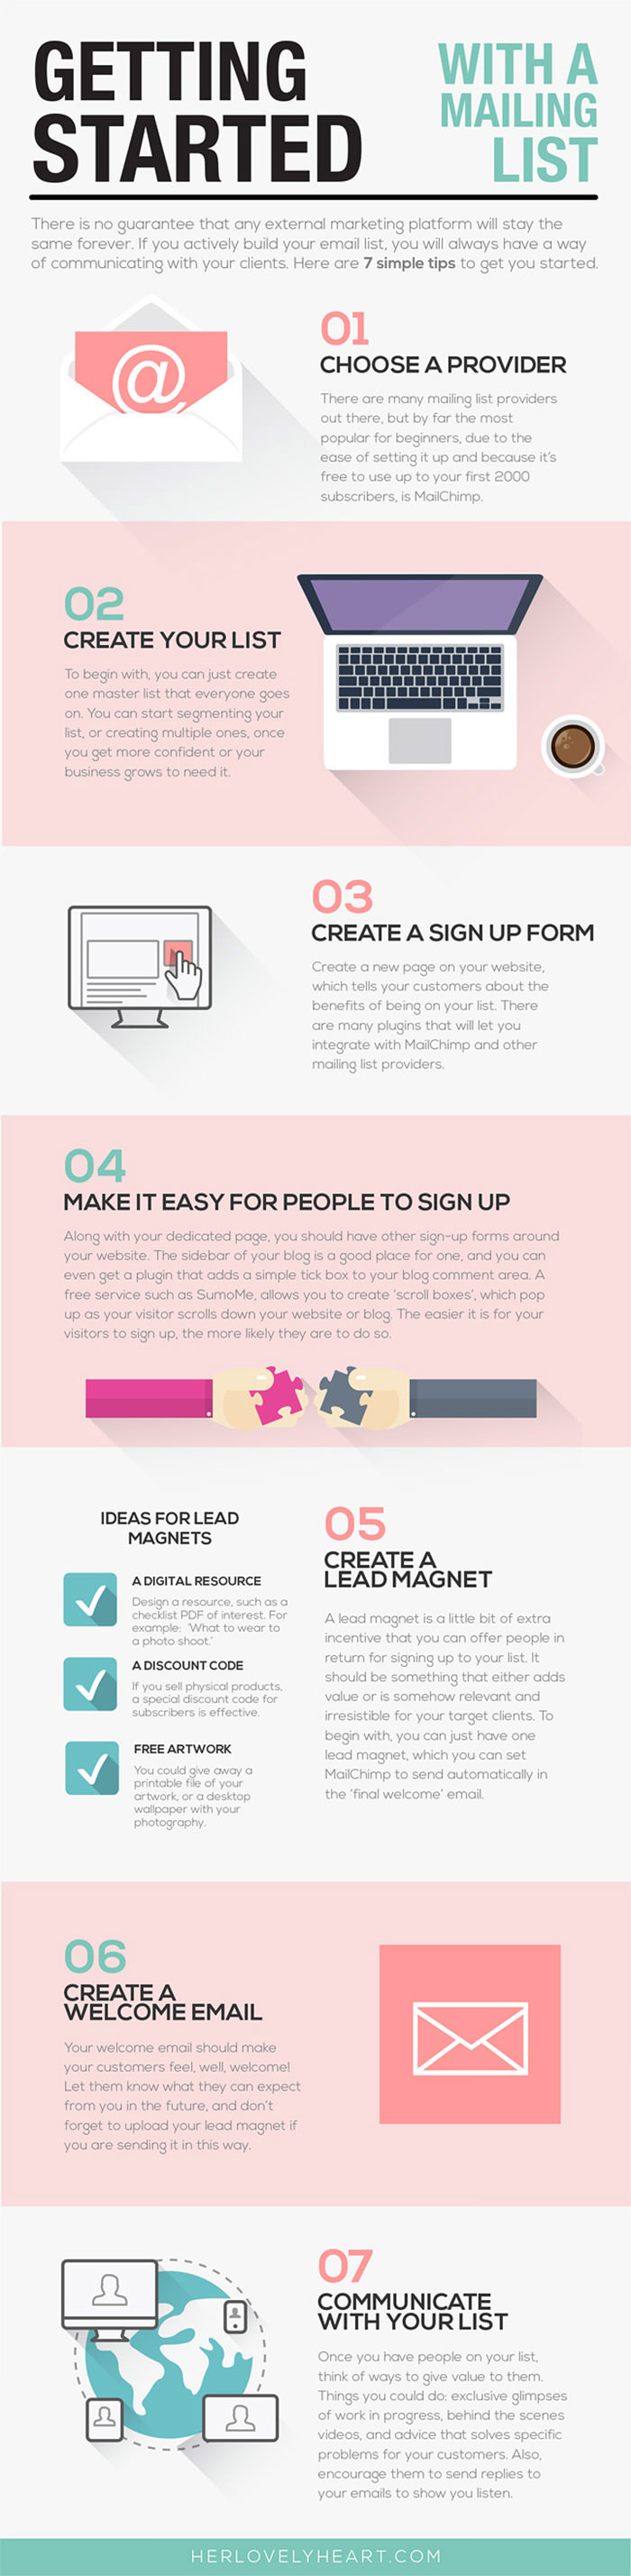 why-how-you-should-grow-your-email-list